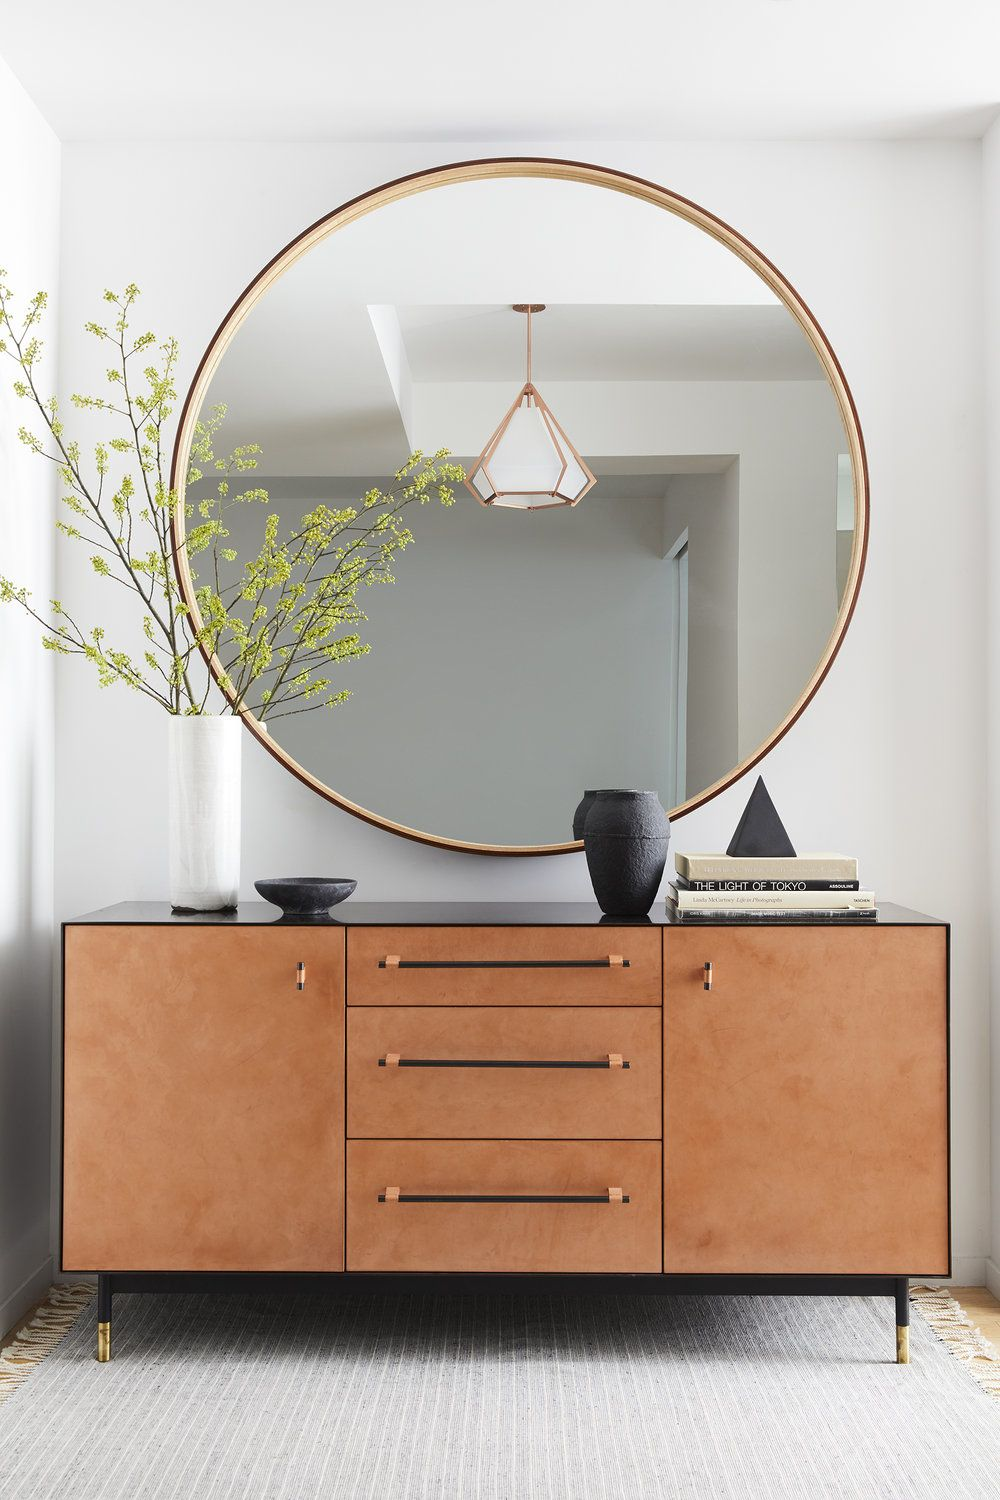 Hallway furniture for small space  Entry Table Ideas That Make a Great First Impression  HOME DECOR